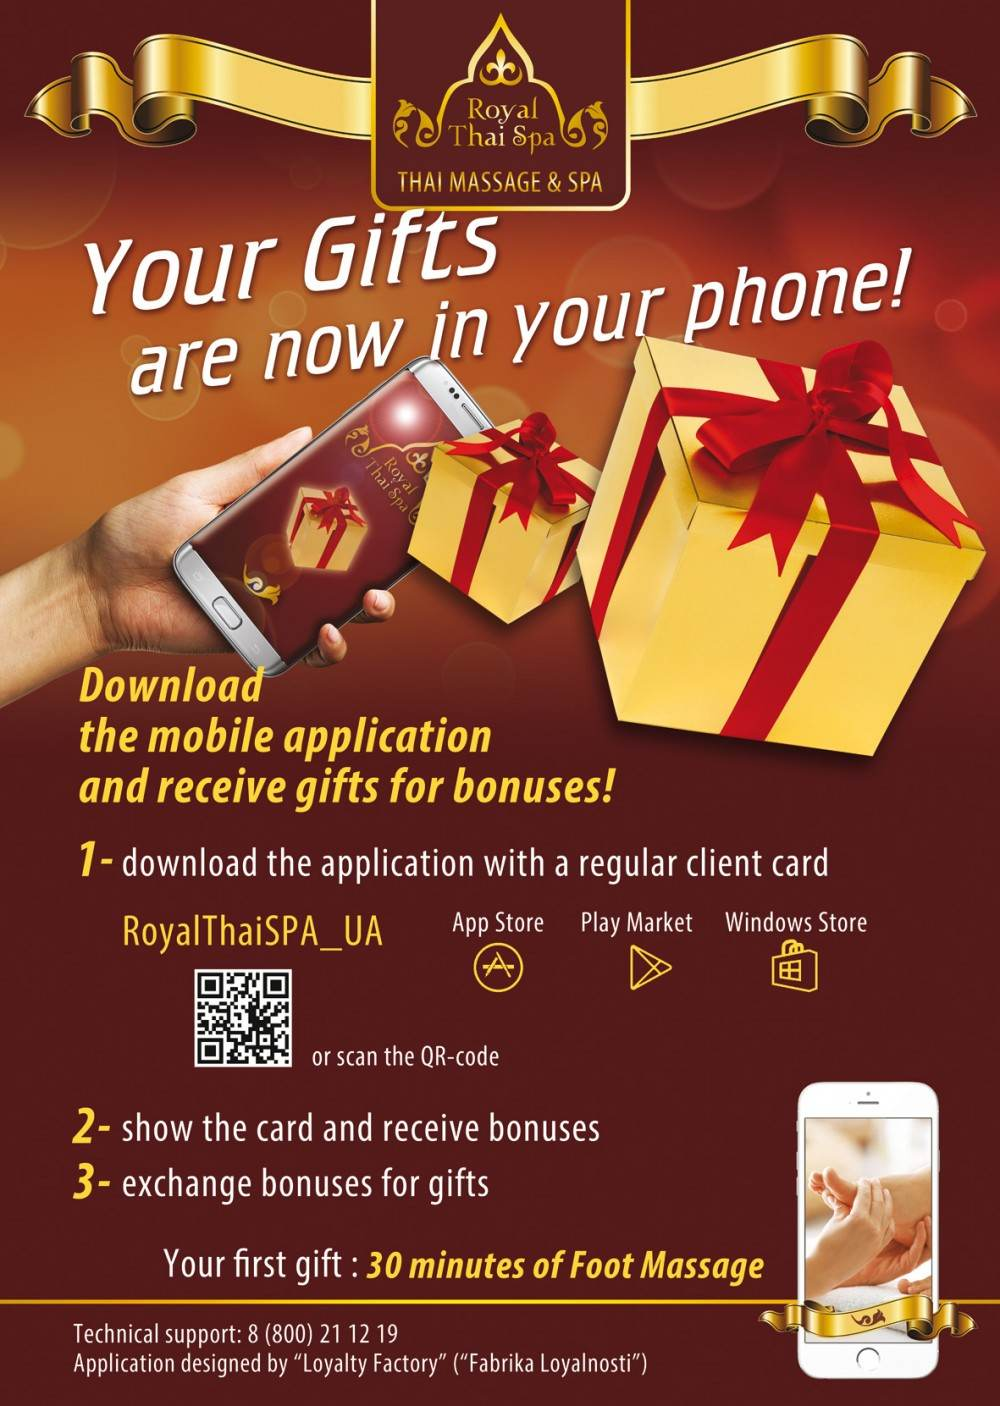 Now our gifts in your phone! Find out all the details!